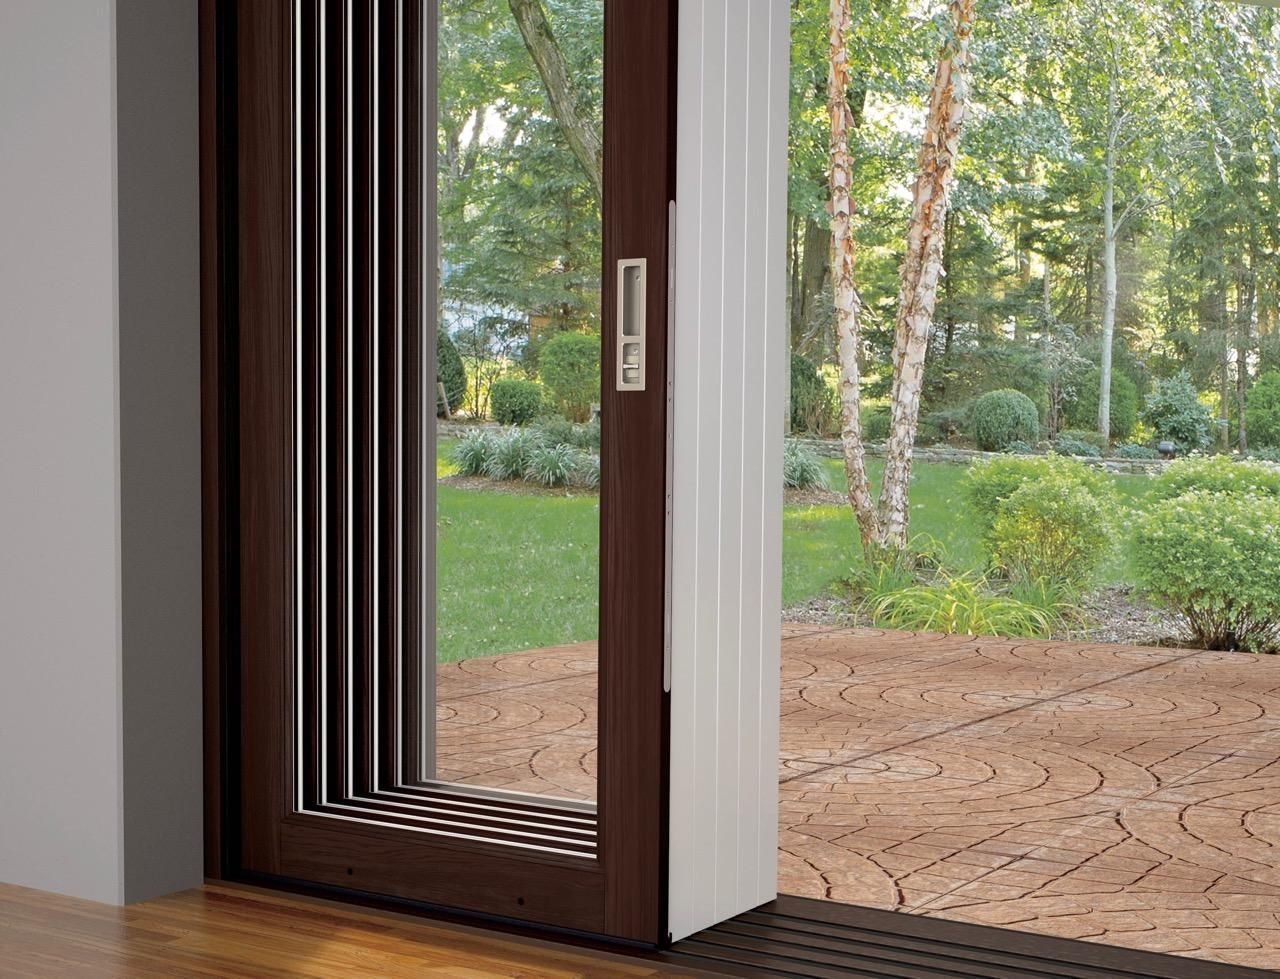 Marvin Offers Three Basic Options The Ultimate Multi Slide Door The Ultimate Lift And Slide Door And The Sliding Glass Door Bifold Doors Architecture Design